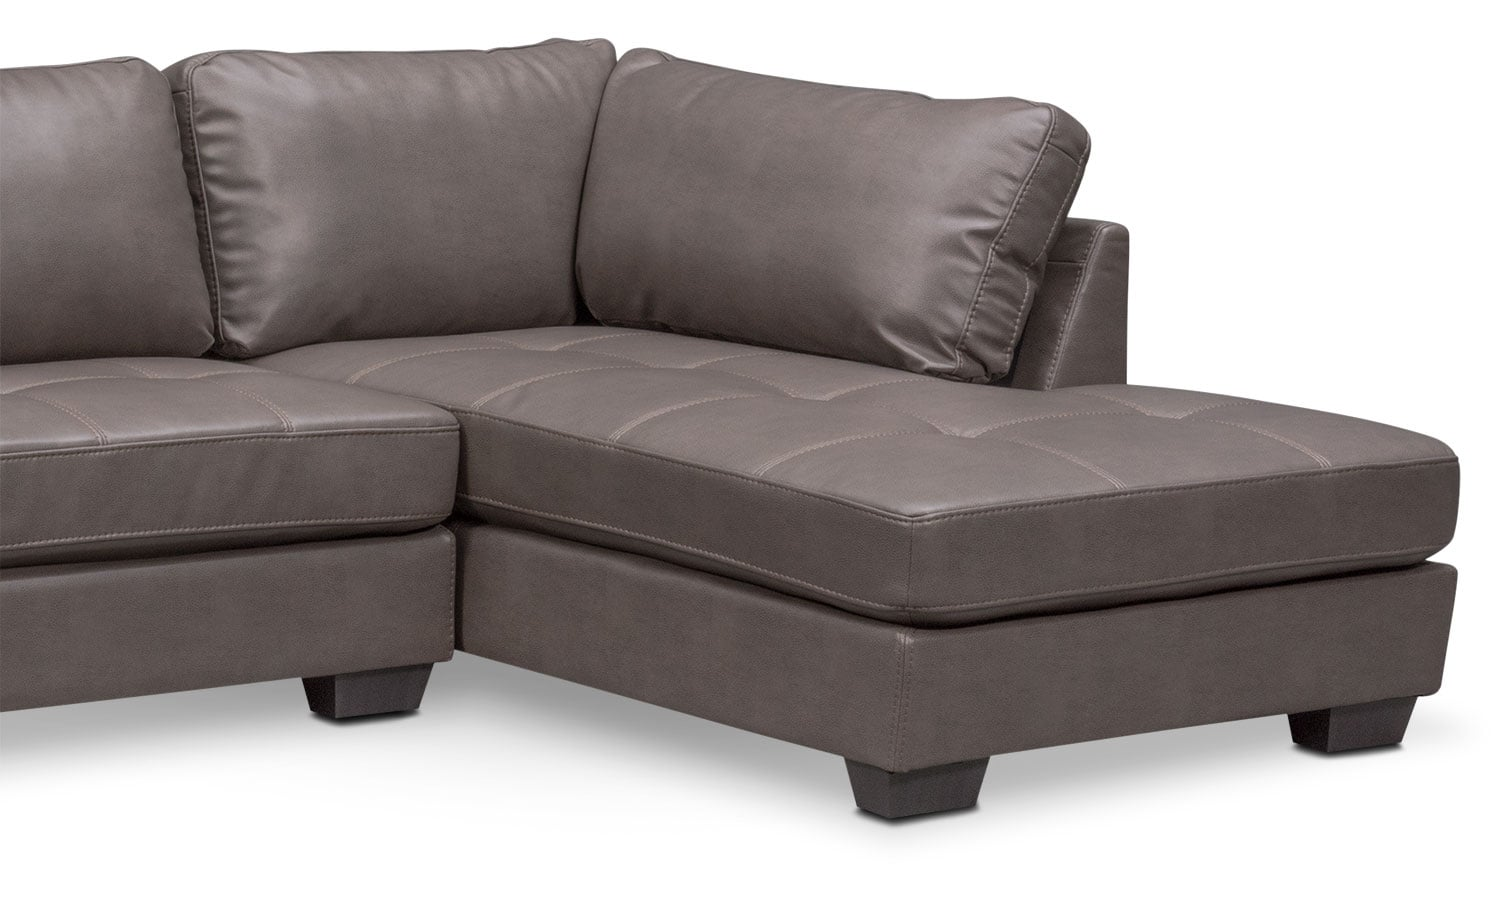 Santana 2piece Sectional With Rightfacing Chaise  Gray